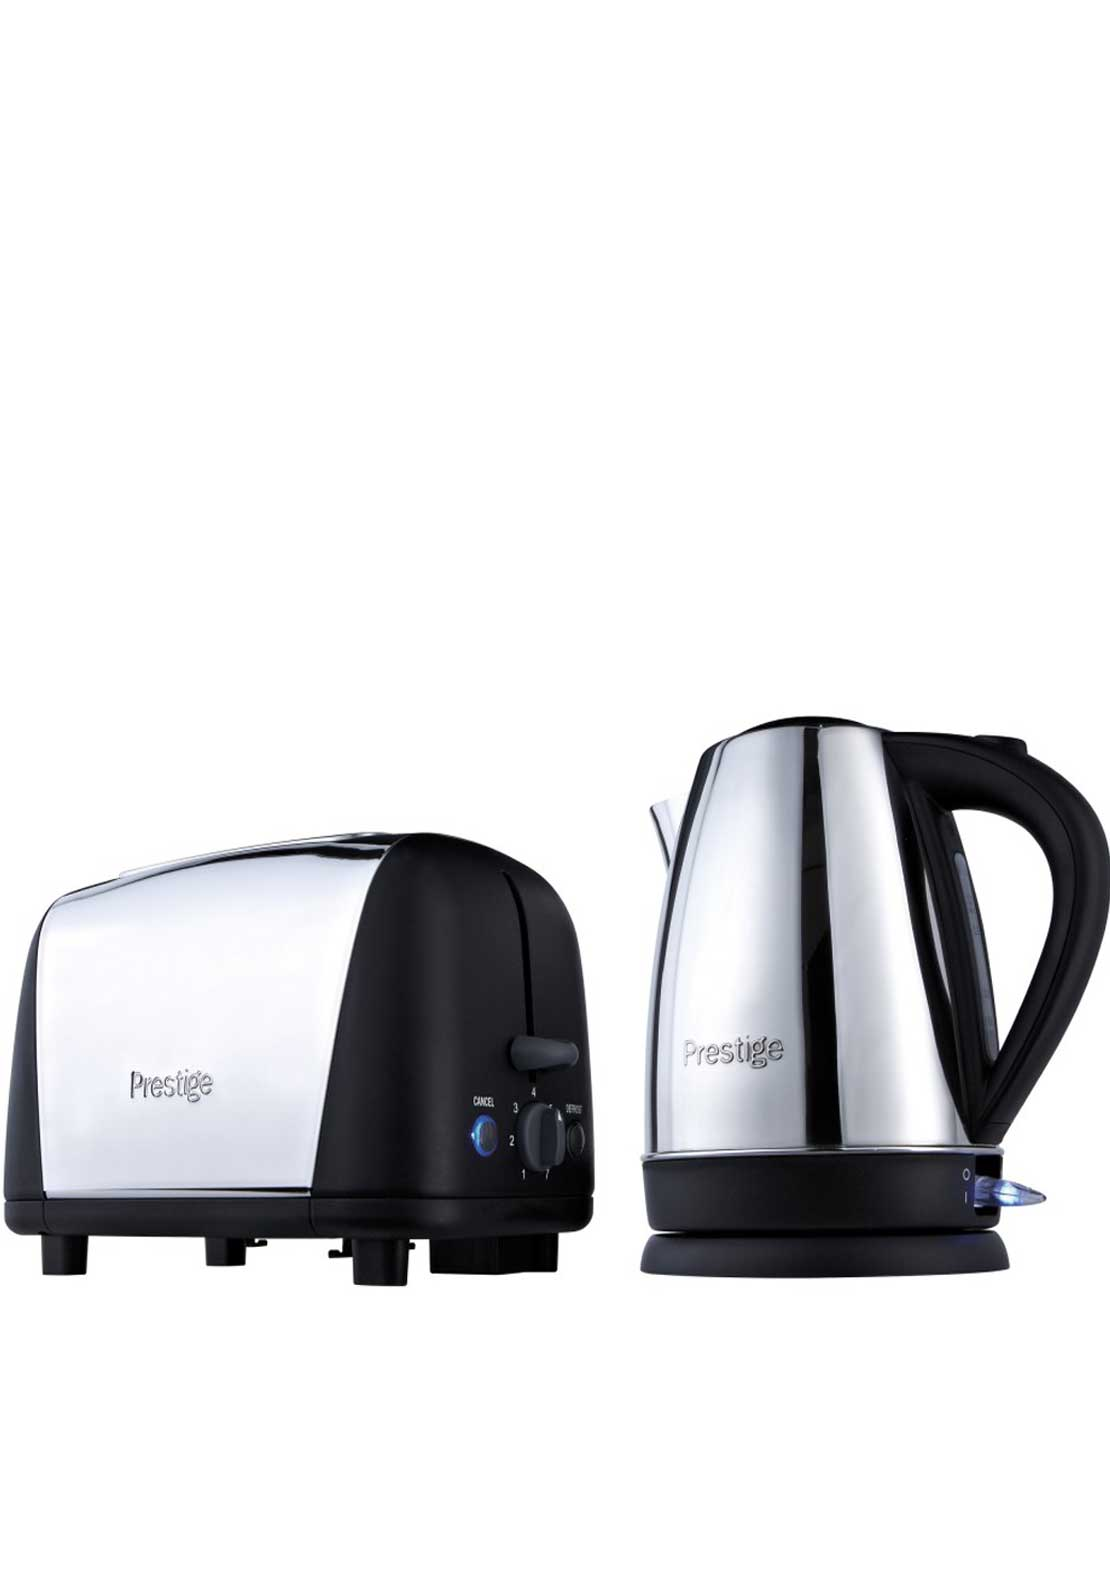 Prestige Breakfast Kettle & 2 Slice Toaster Set